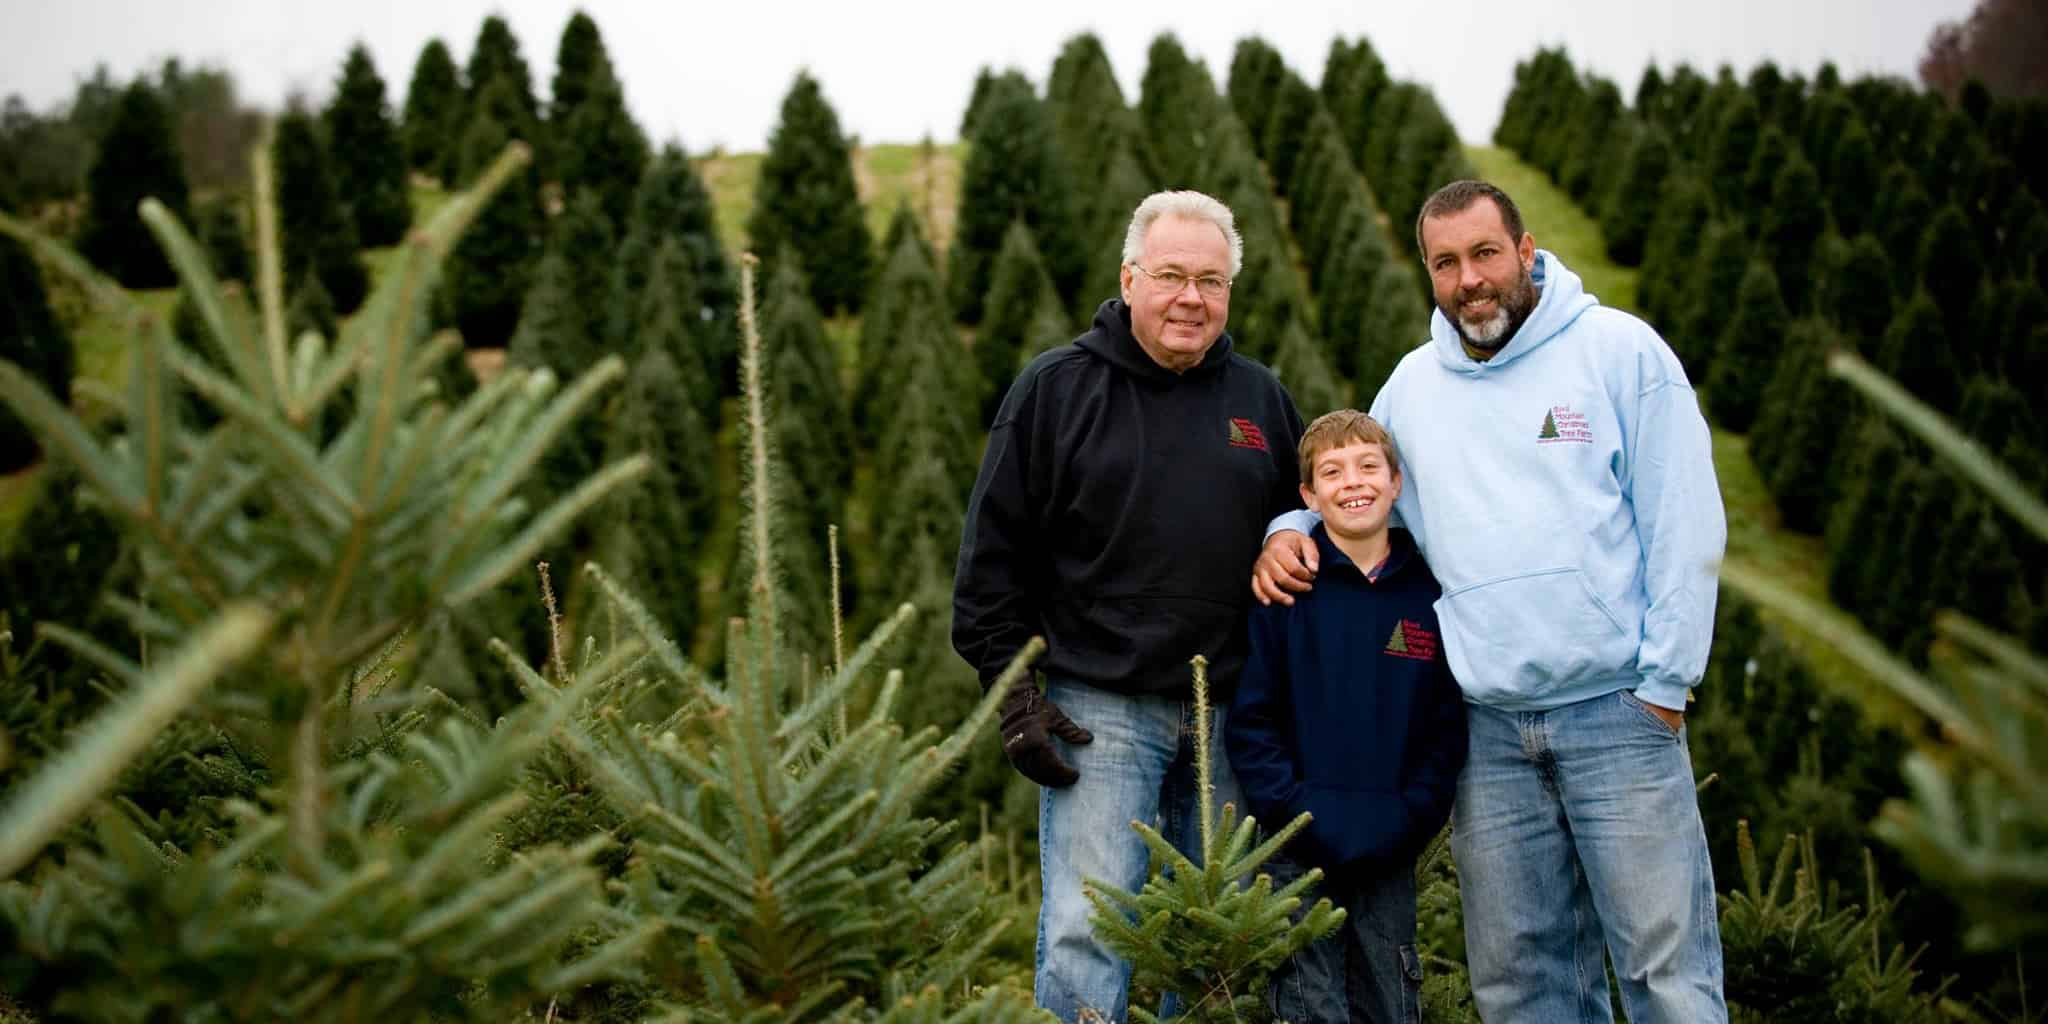 Boyd Mountain Christmas Tree Farm in Haywood County